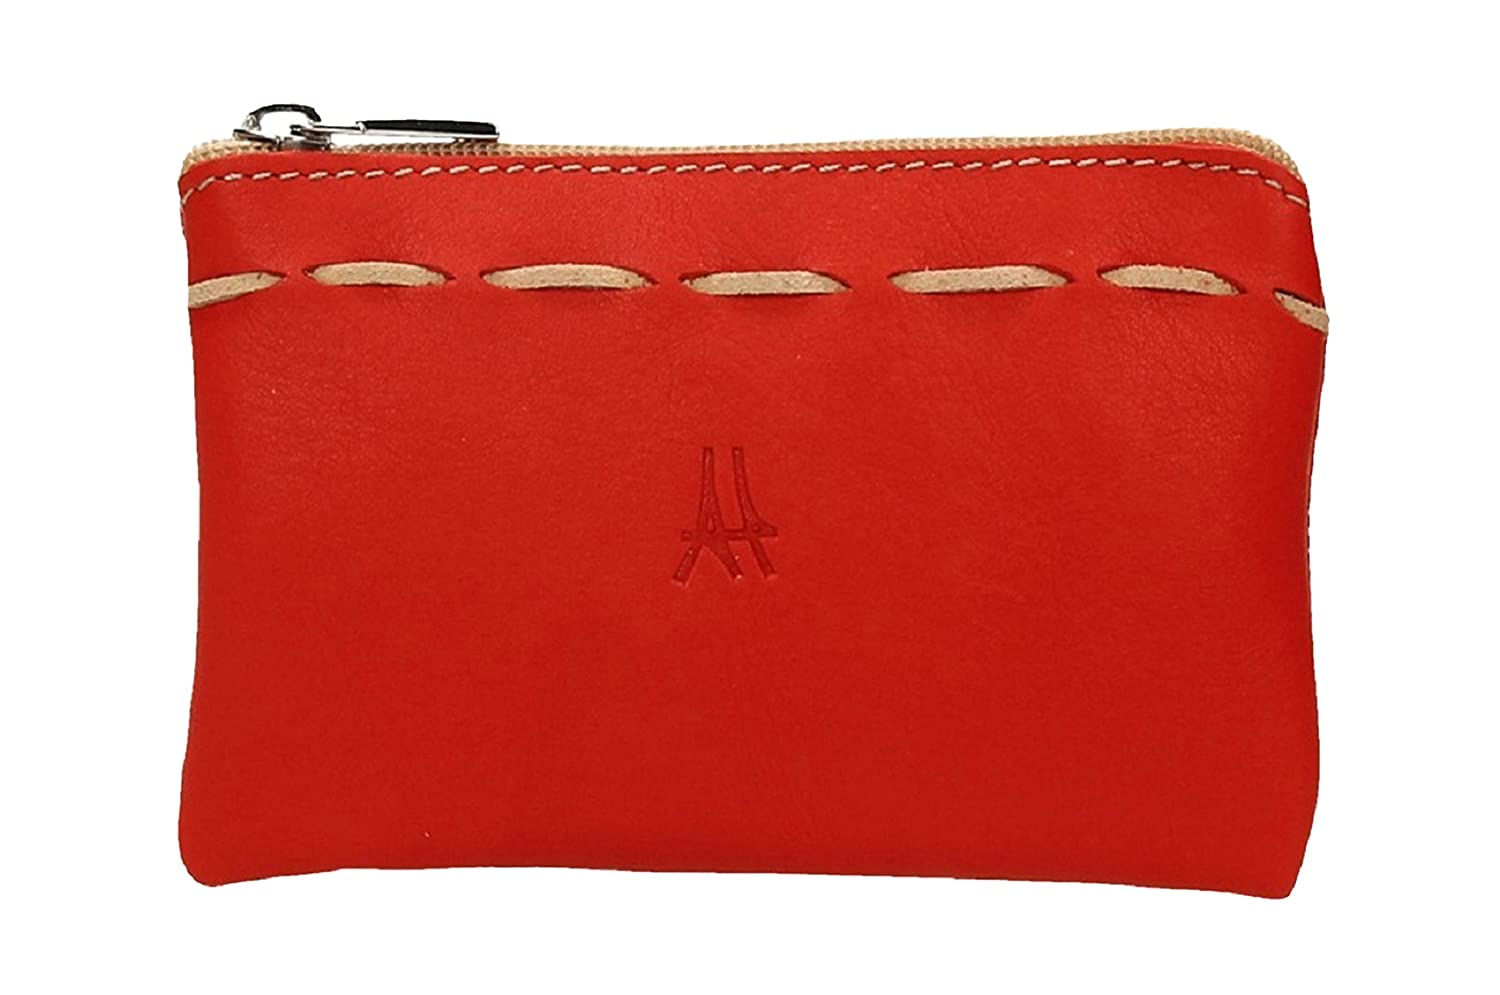 ANTHER P1246R Monedero Piel color Rojo 14 X 9 cm: Amazon.es ...